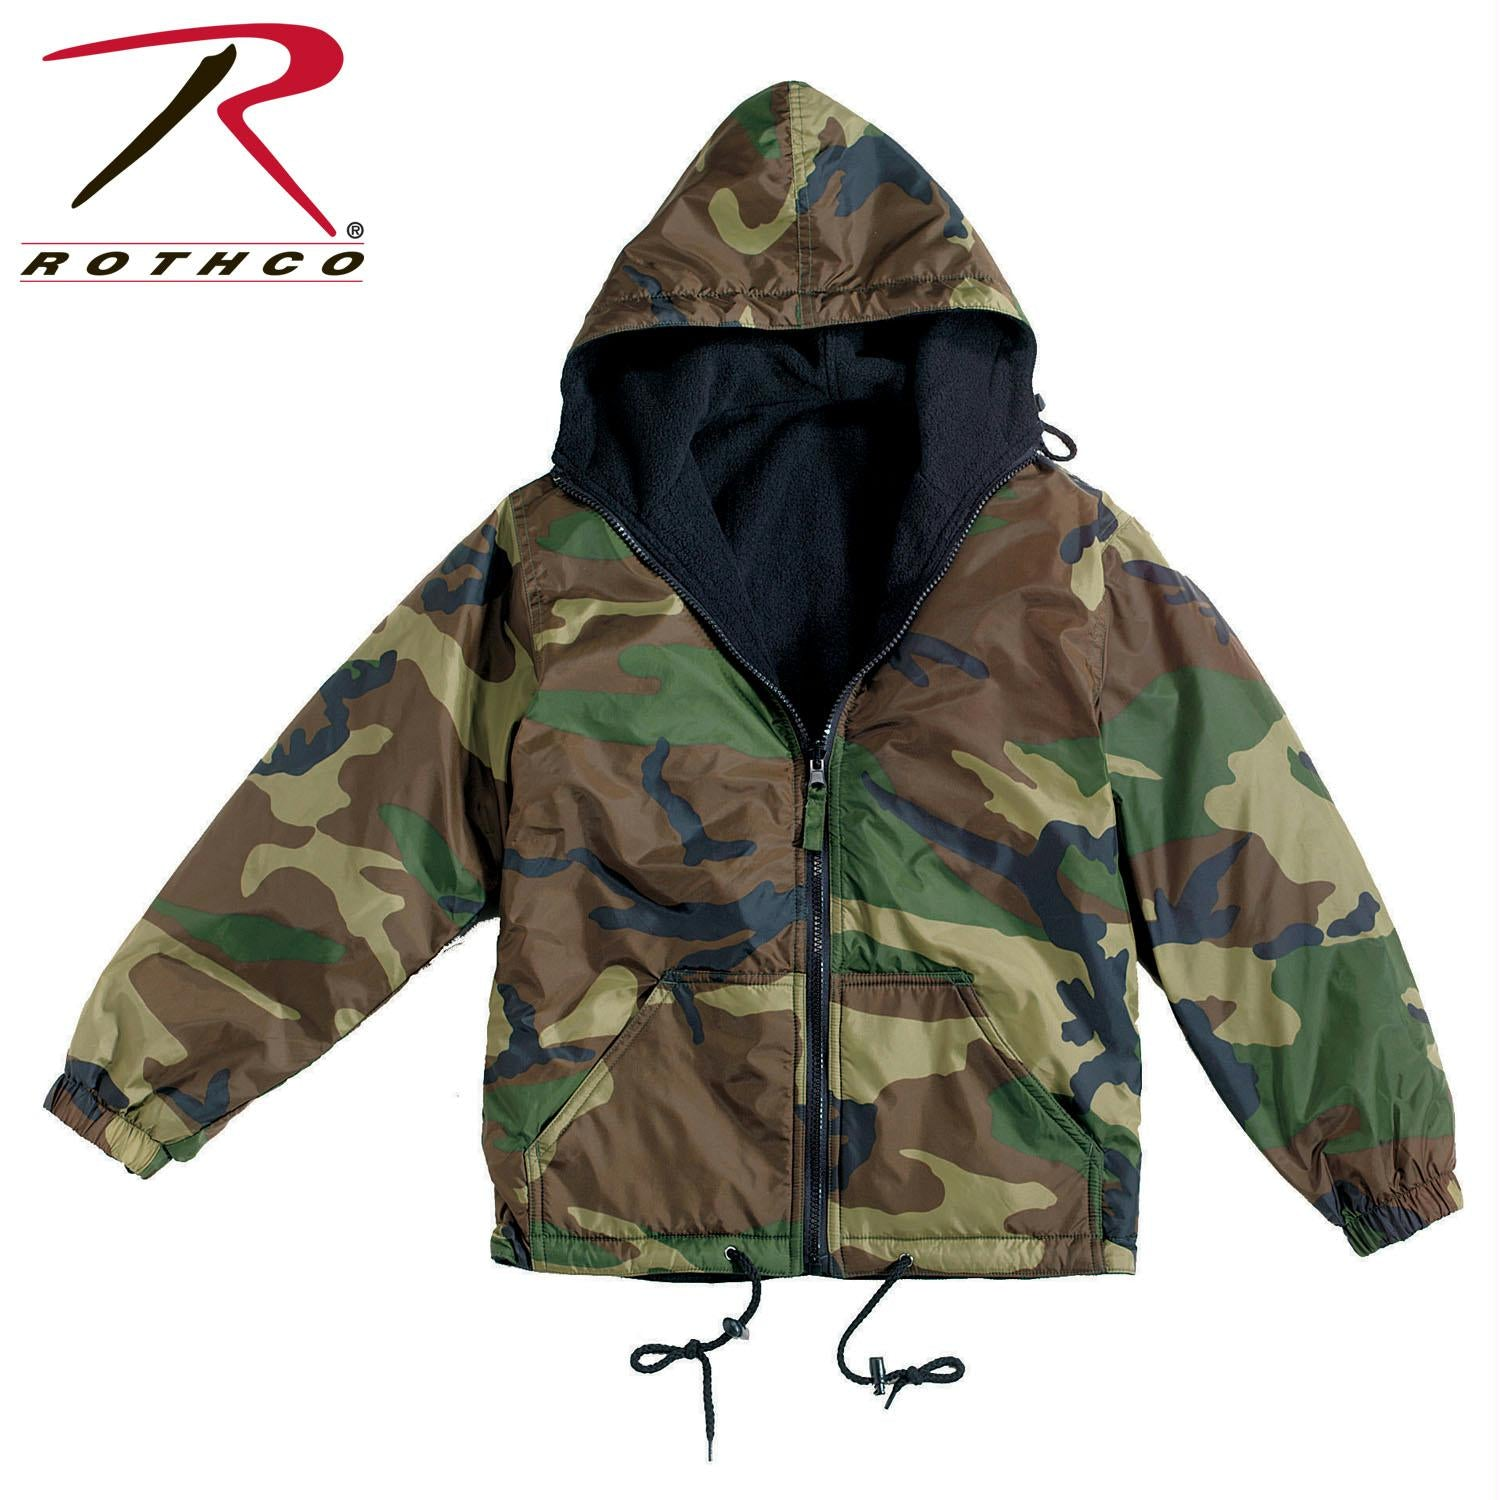 Rothco Reversible Lined Jacket With Hood - Woodland Camo / 2XL